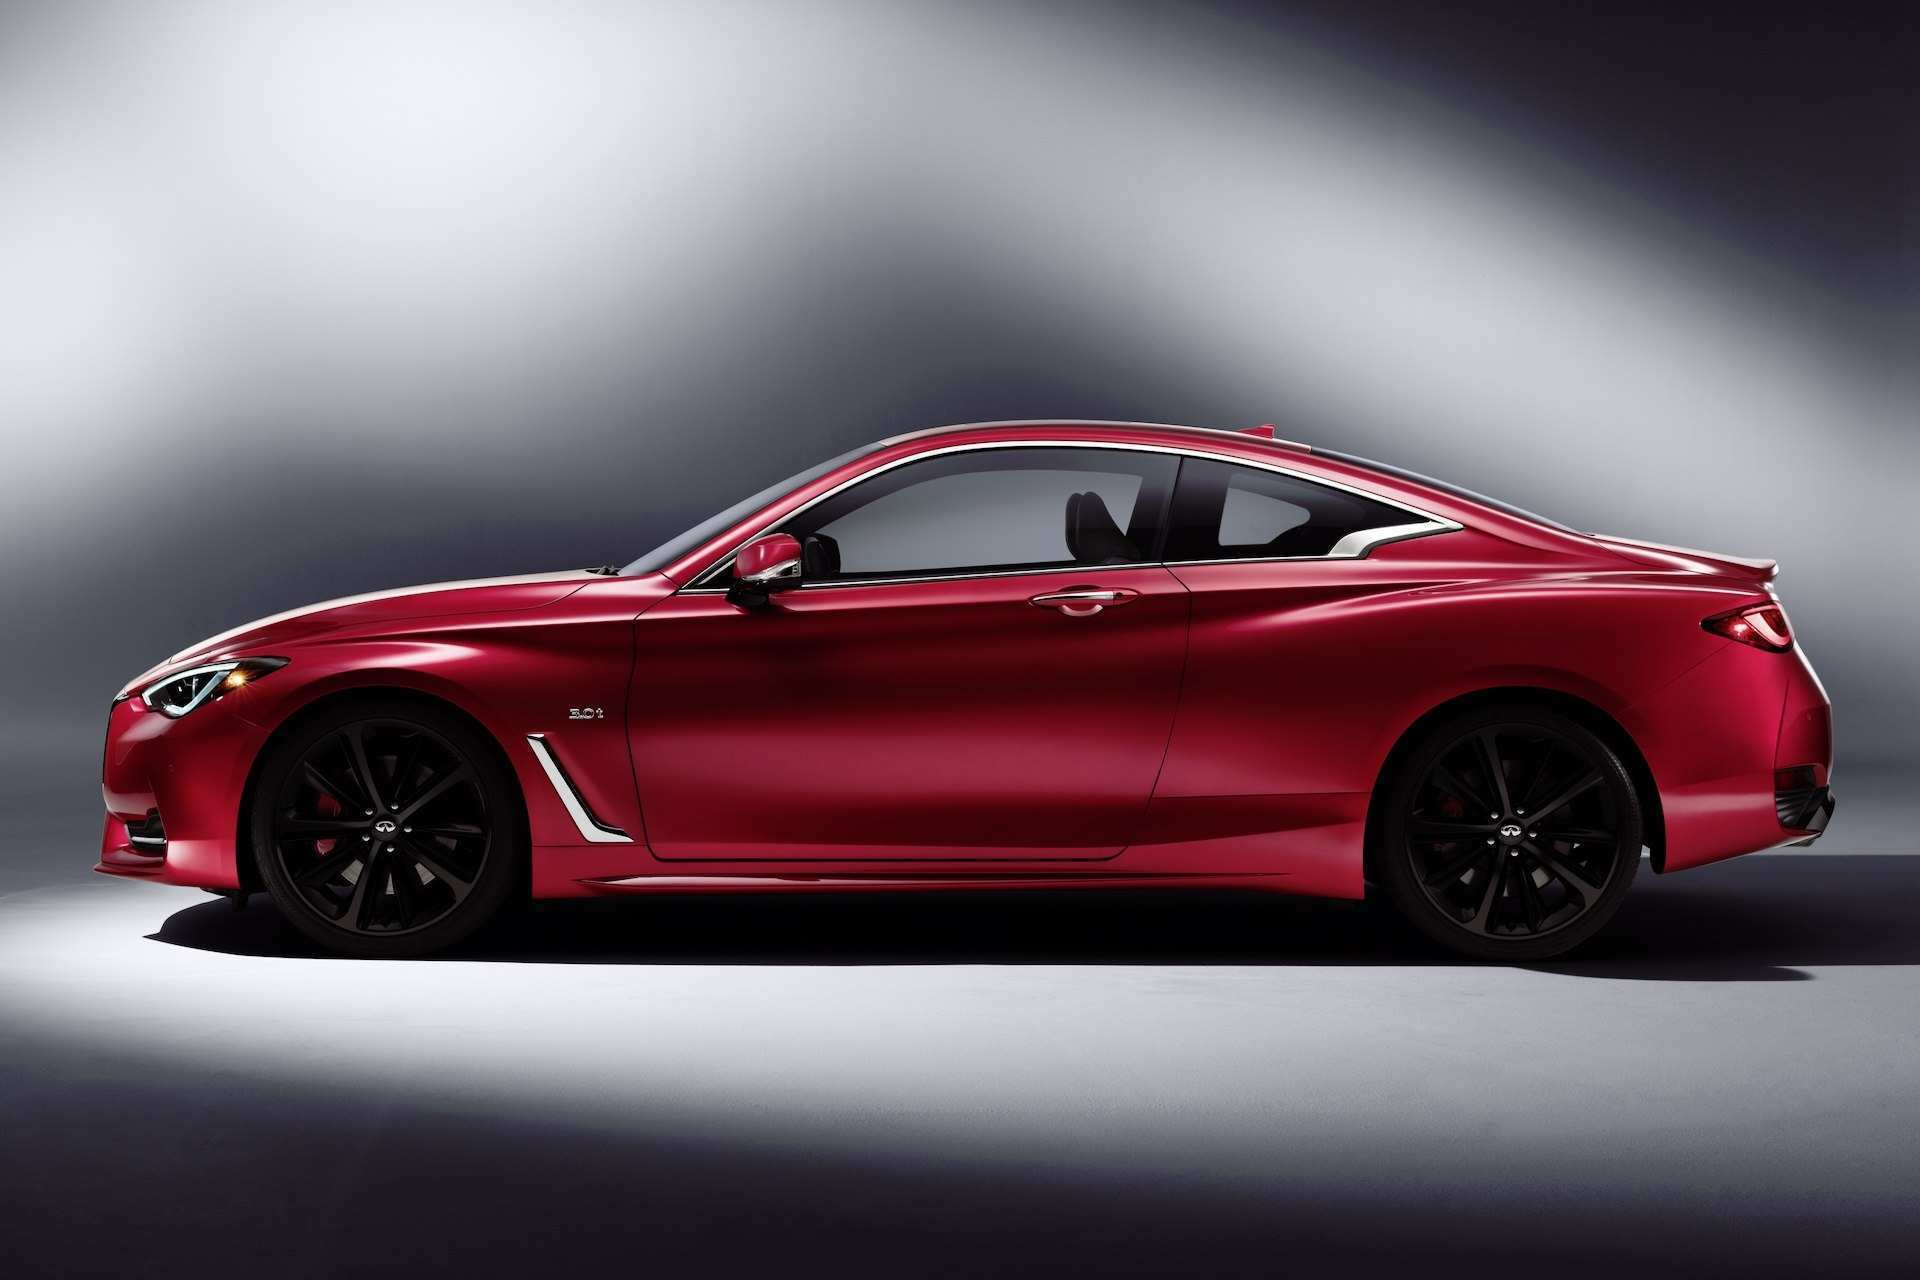 21 New 2020 Infiniti Q60 Coupe Ipl Picture by 2020 Infiniti Q60 Coupe Ipl